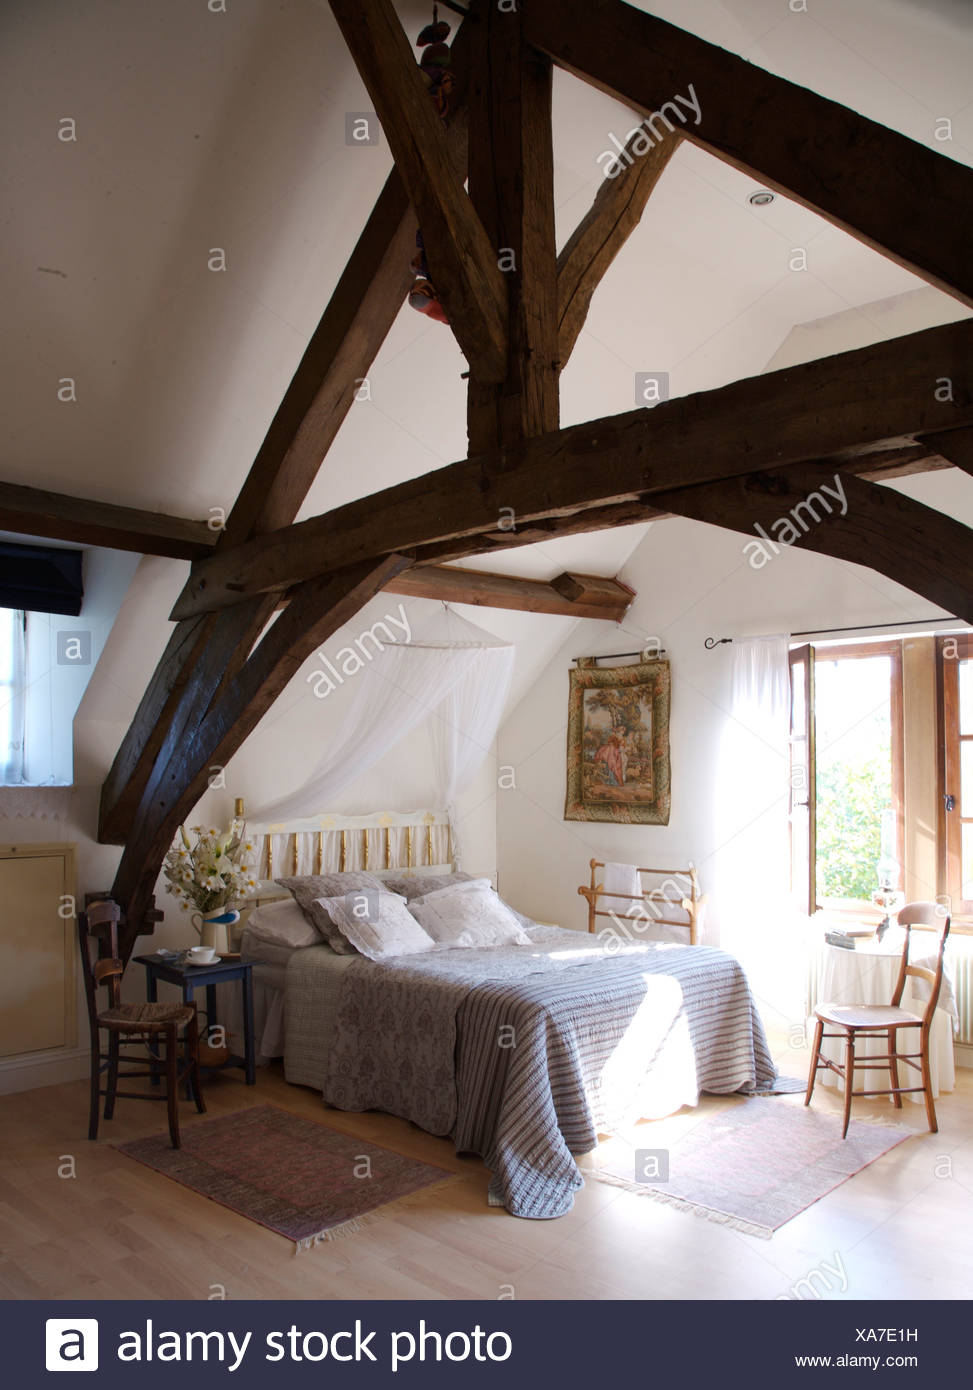 Wooden Ceiling In Rustic Interior Stockfotos & Wooden Ceiling In ...